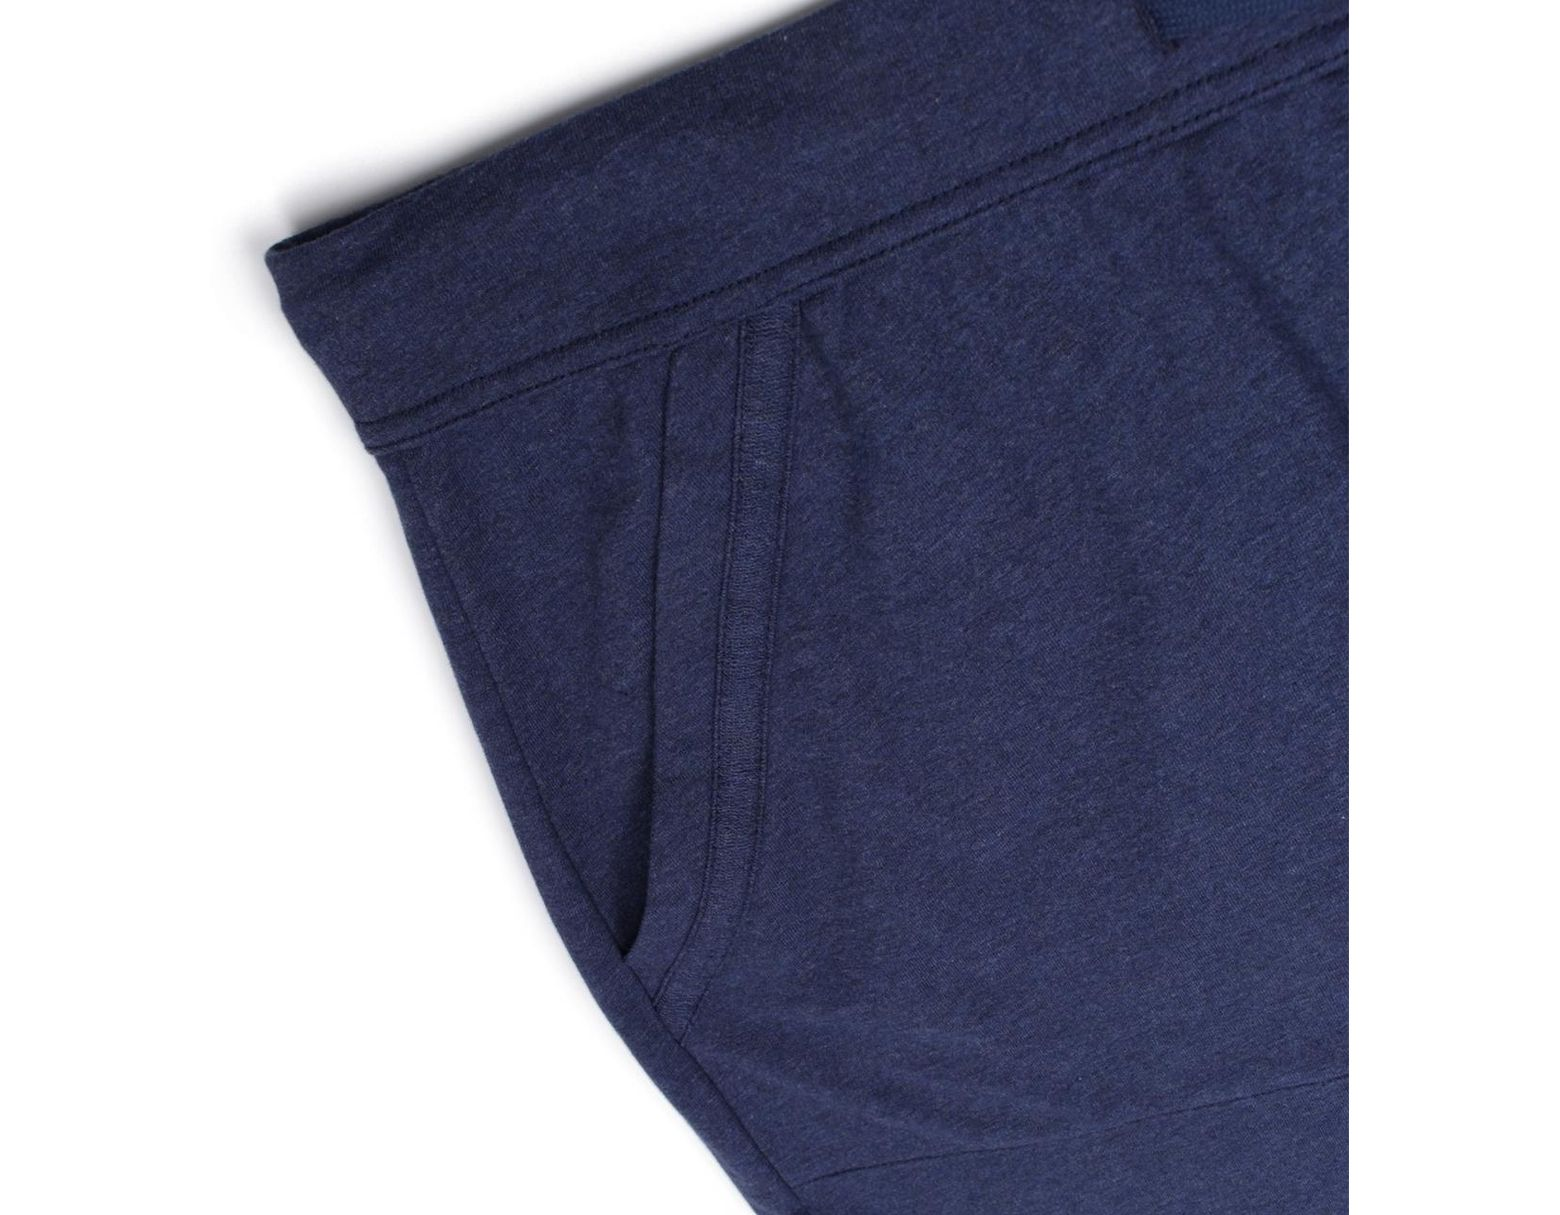 510a20d599ba36 BOSS by Hugo Boss Boss Loungewear Contemporary Navy Shorts in Blue for Men  - Lyst